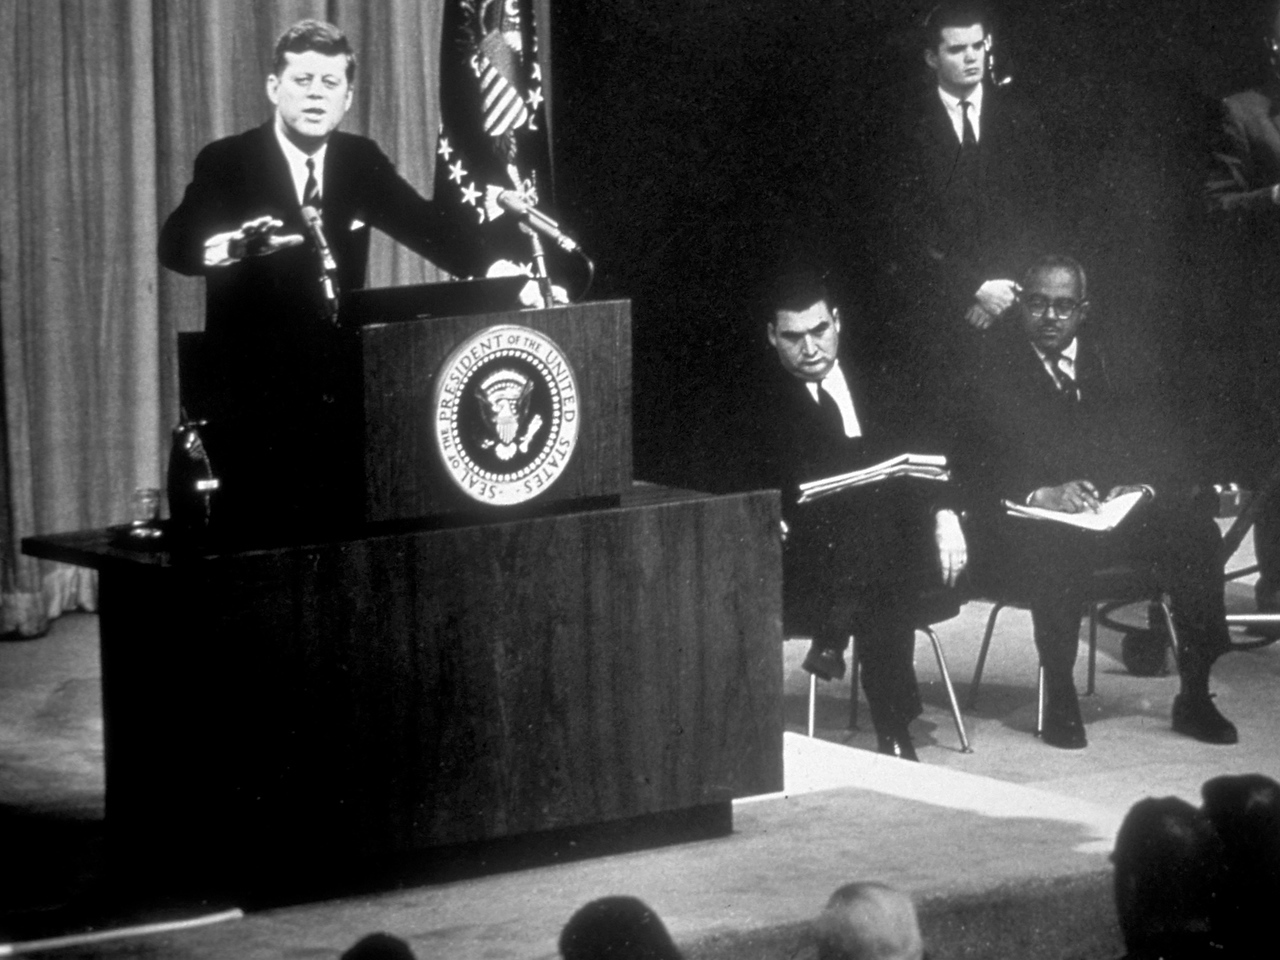 "The VISTA program was first envisioned by President John F. Kennedy to serve the needs of the poorest Americans. In his January 1963 State of the Union Message, President Kennedy suggested a national service corps to serve ""our own community needs in mental health hospitals, on Indian reservations, in centers for the aged and young delinquents, in schools for the illiterate and handicapped."" (© 1963 Corporation for National and Community Service - Office of Public Affairs)"